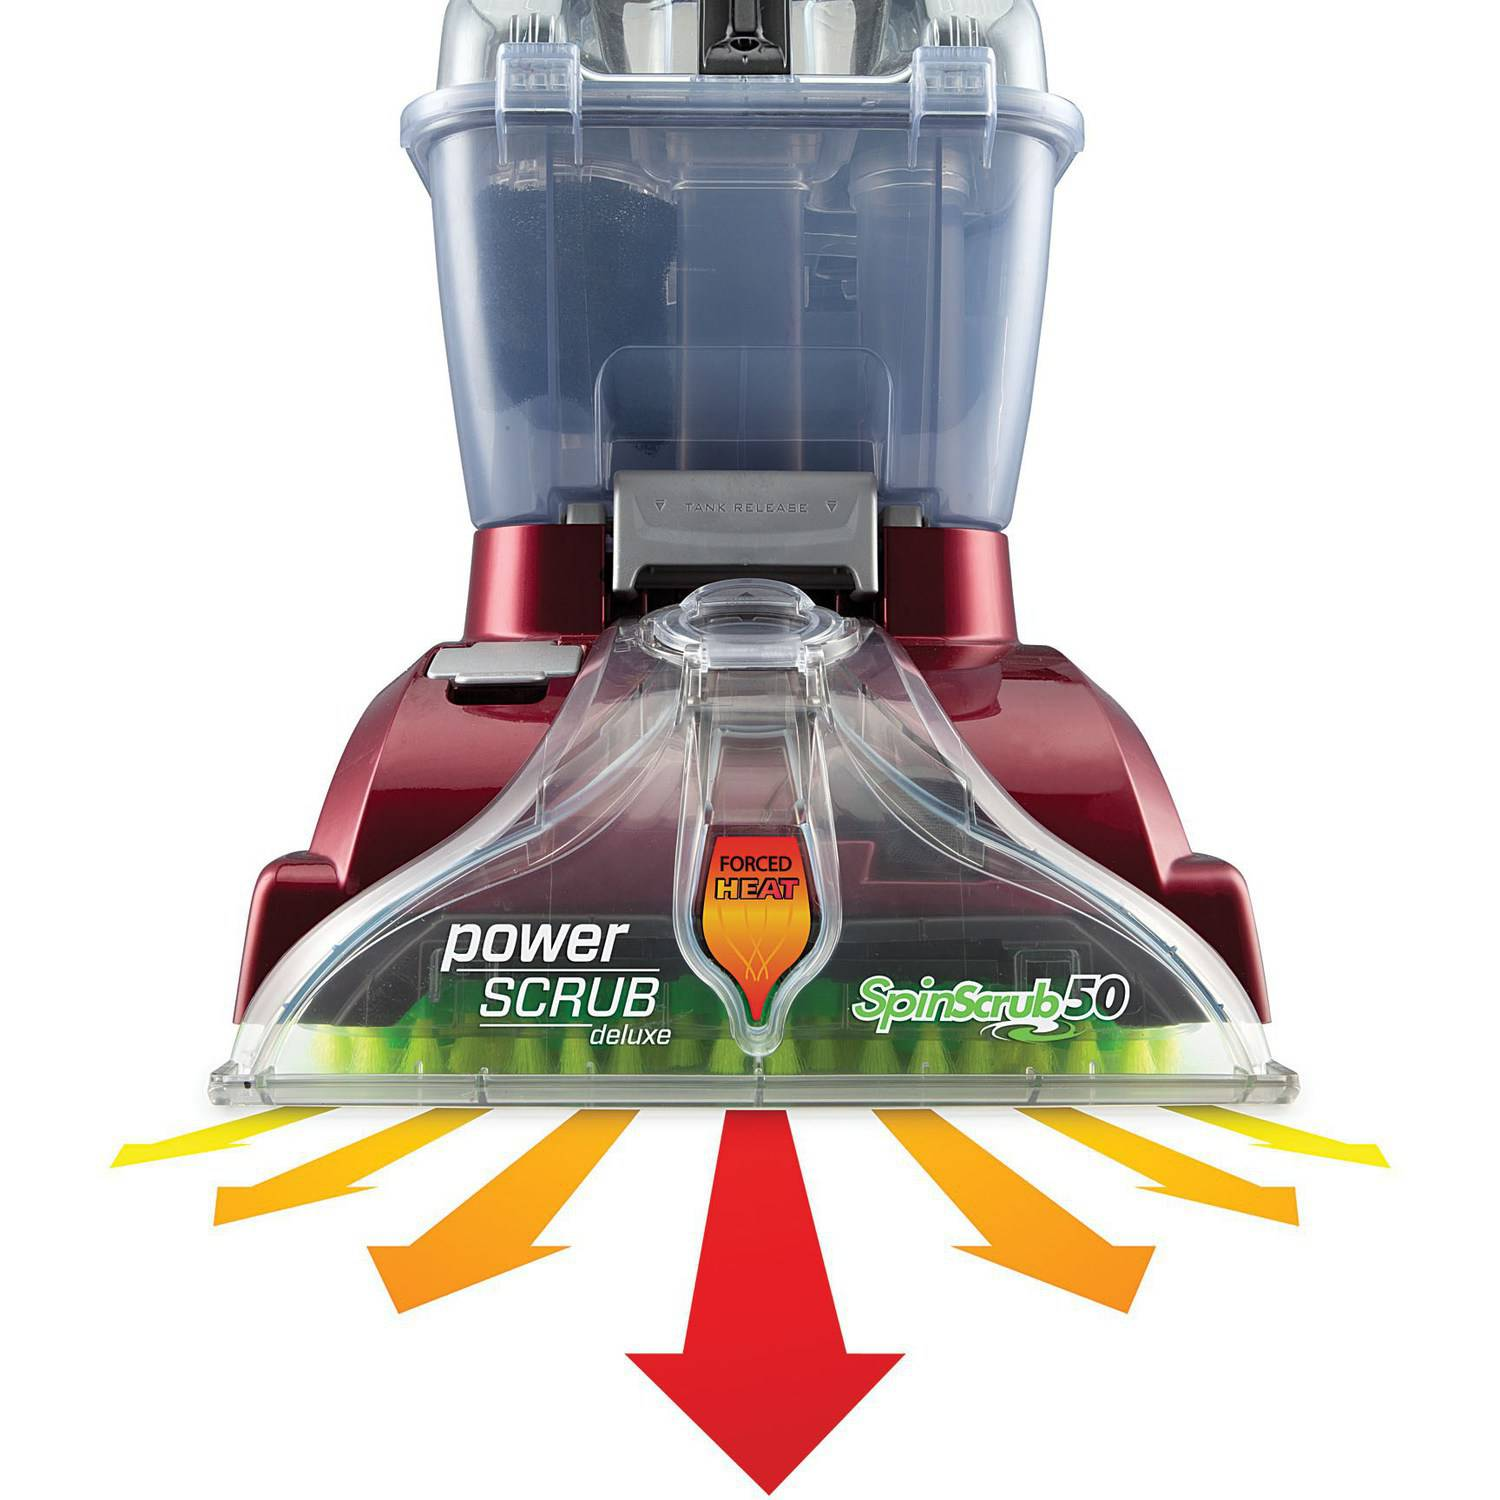 Kohl S Hoover Powerscrub Deluxe Carpet Cleaner With Tools